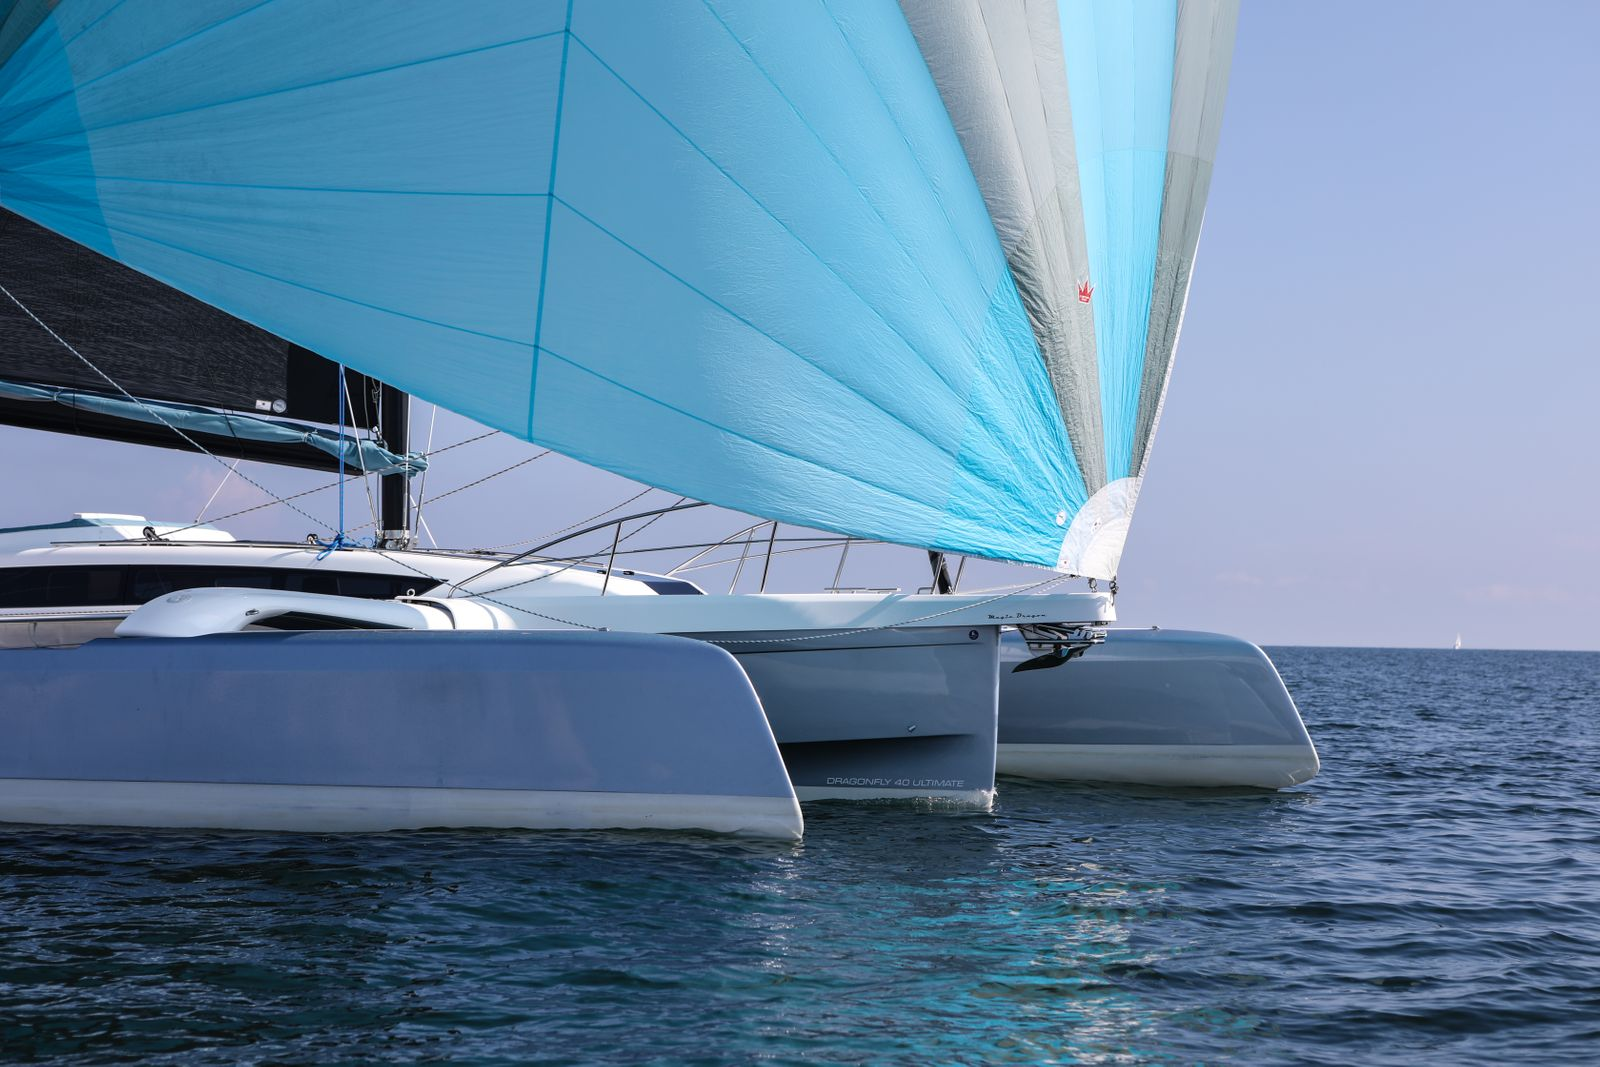 2_EYOTY2021 Dragonfly 40 Performance Cruiser YACHT_N.Guenter